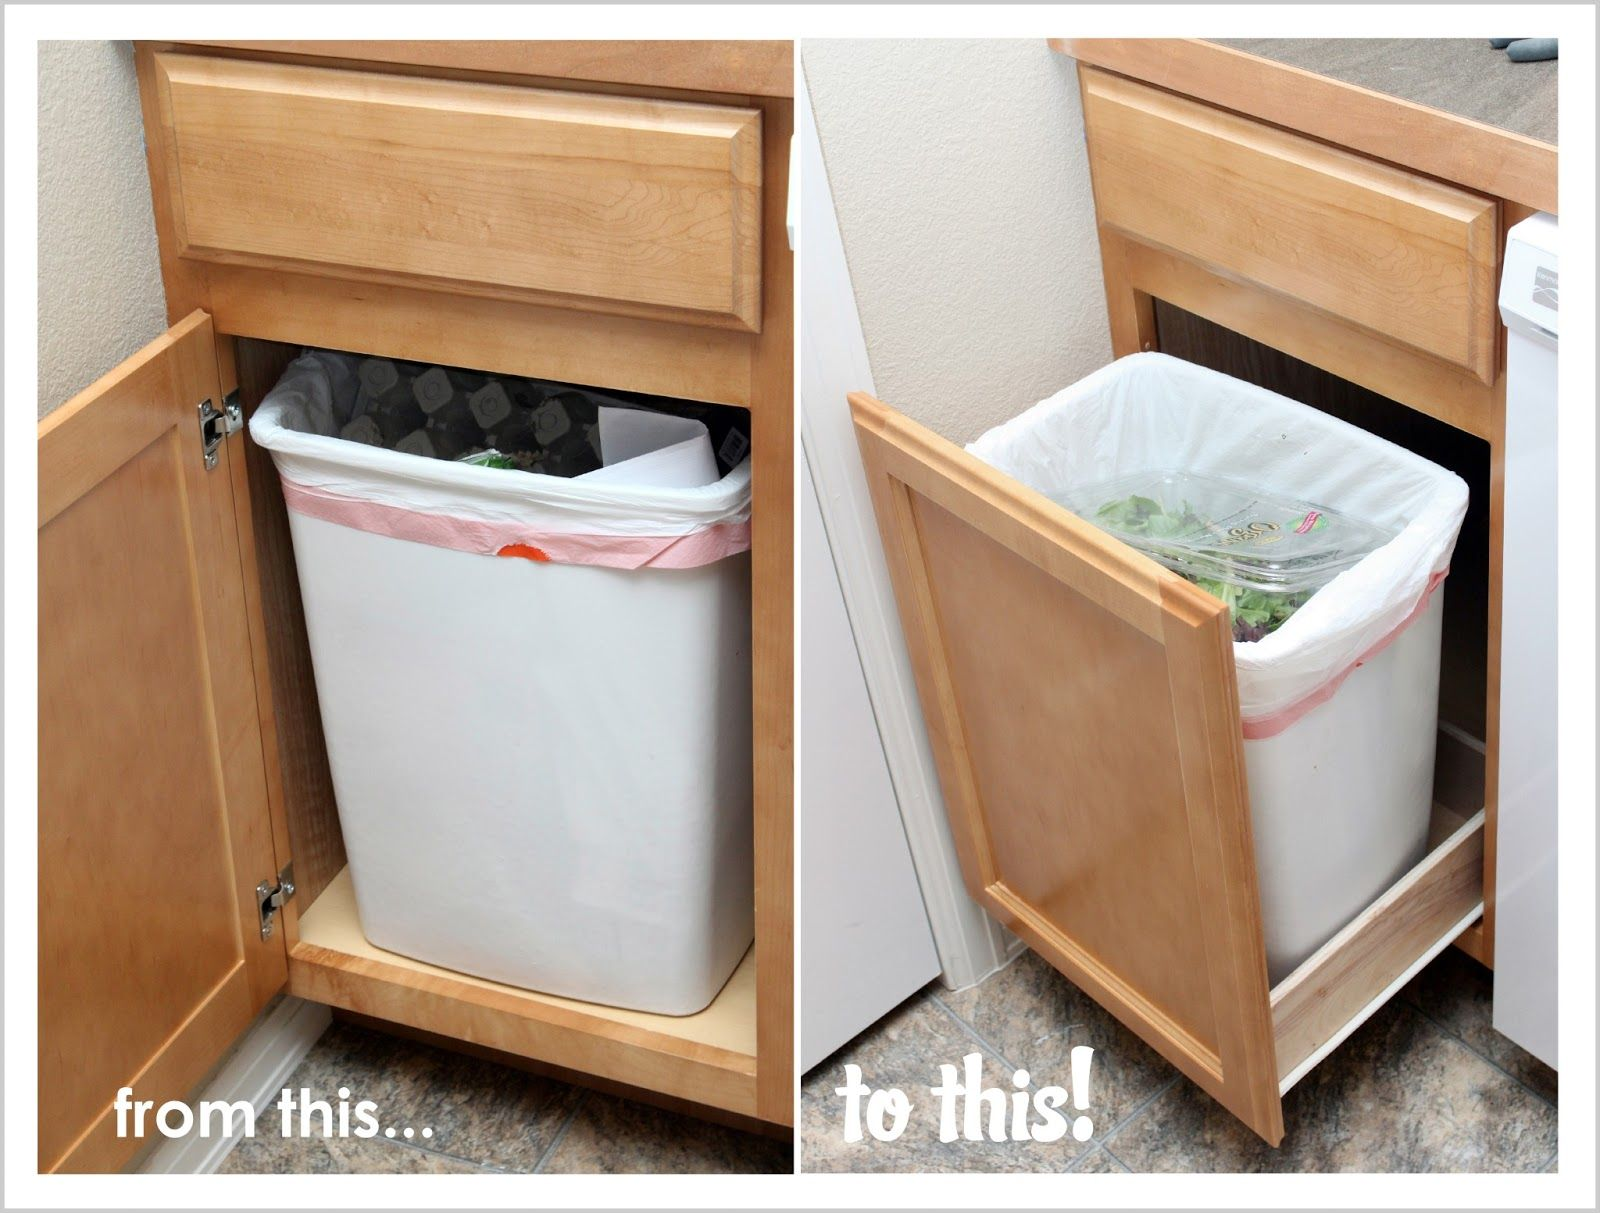 Our Modern Homestead: DIY Pull-out Trash Drawer | House - Kitchen ...